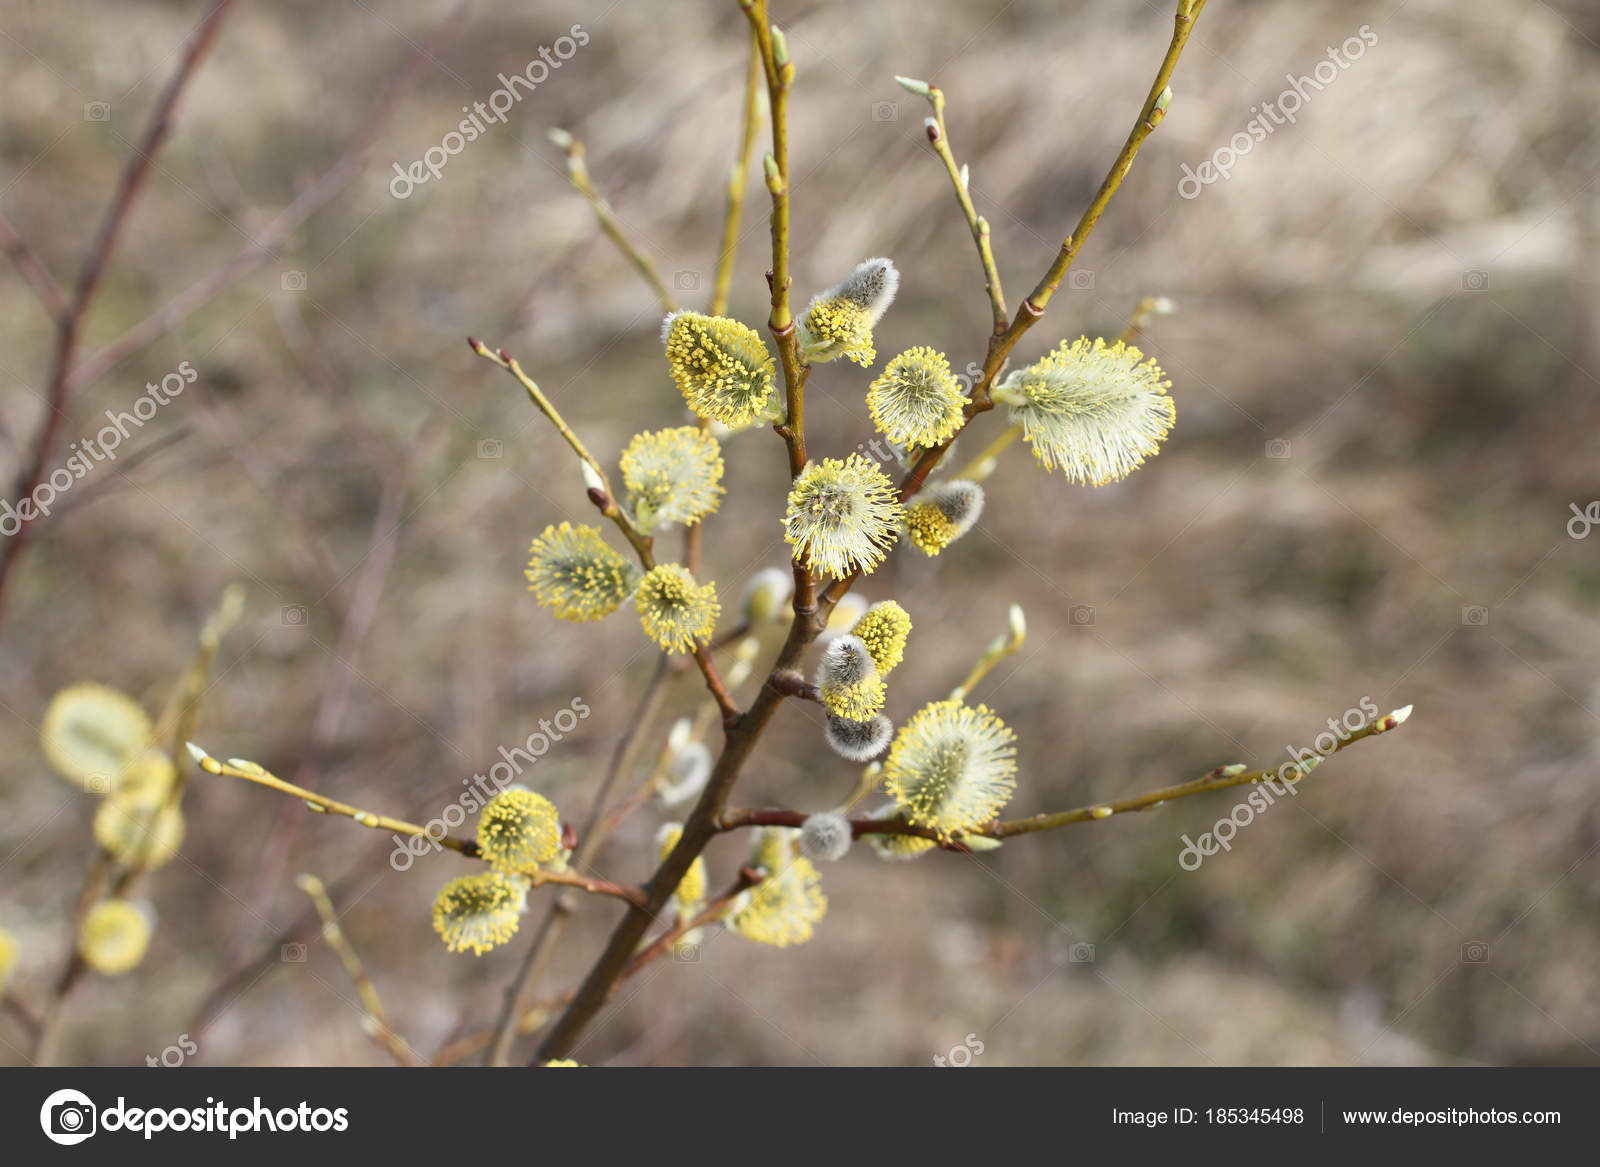 Blossoming buds on pussy willow against dry grass background